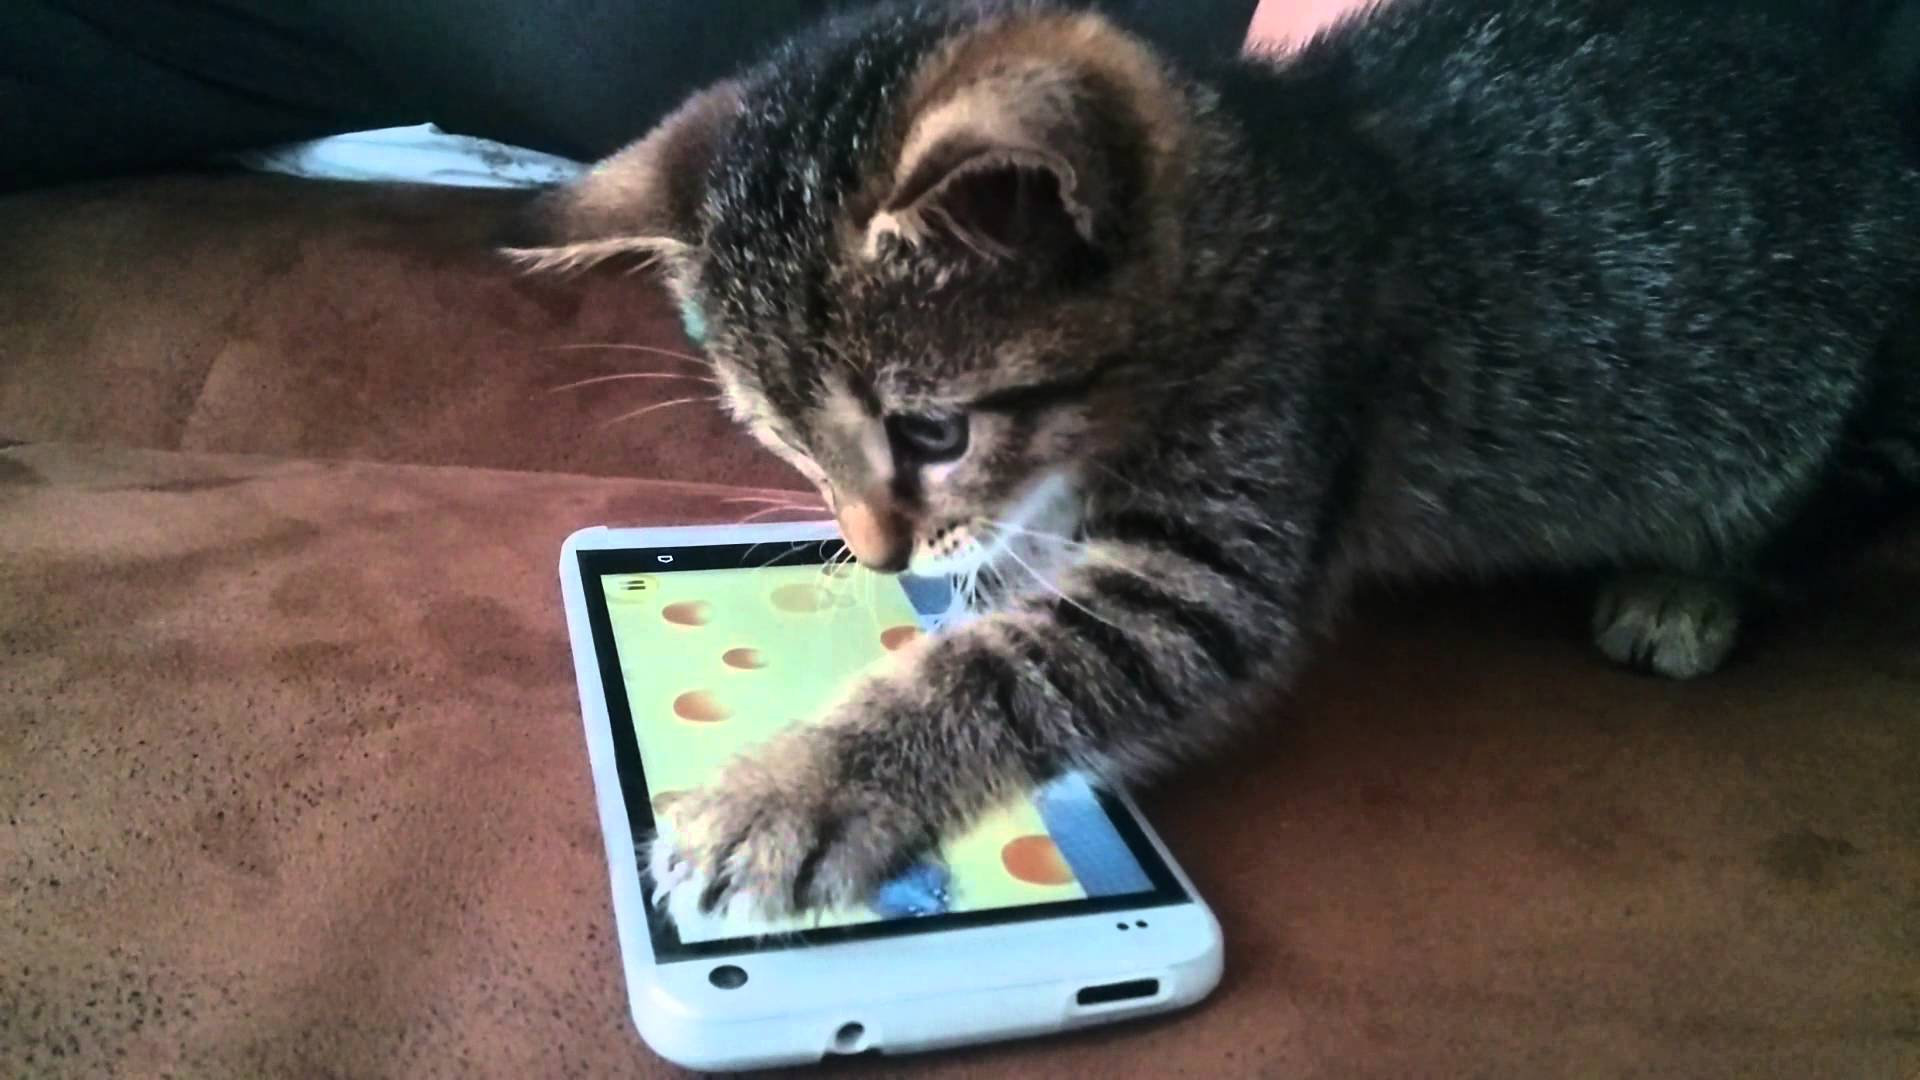 Cat playing a videogame on a smartphone